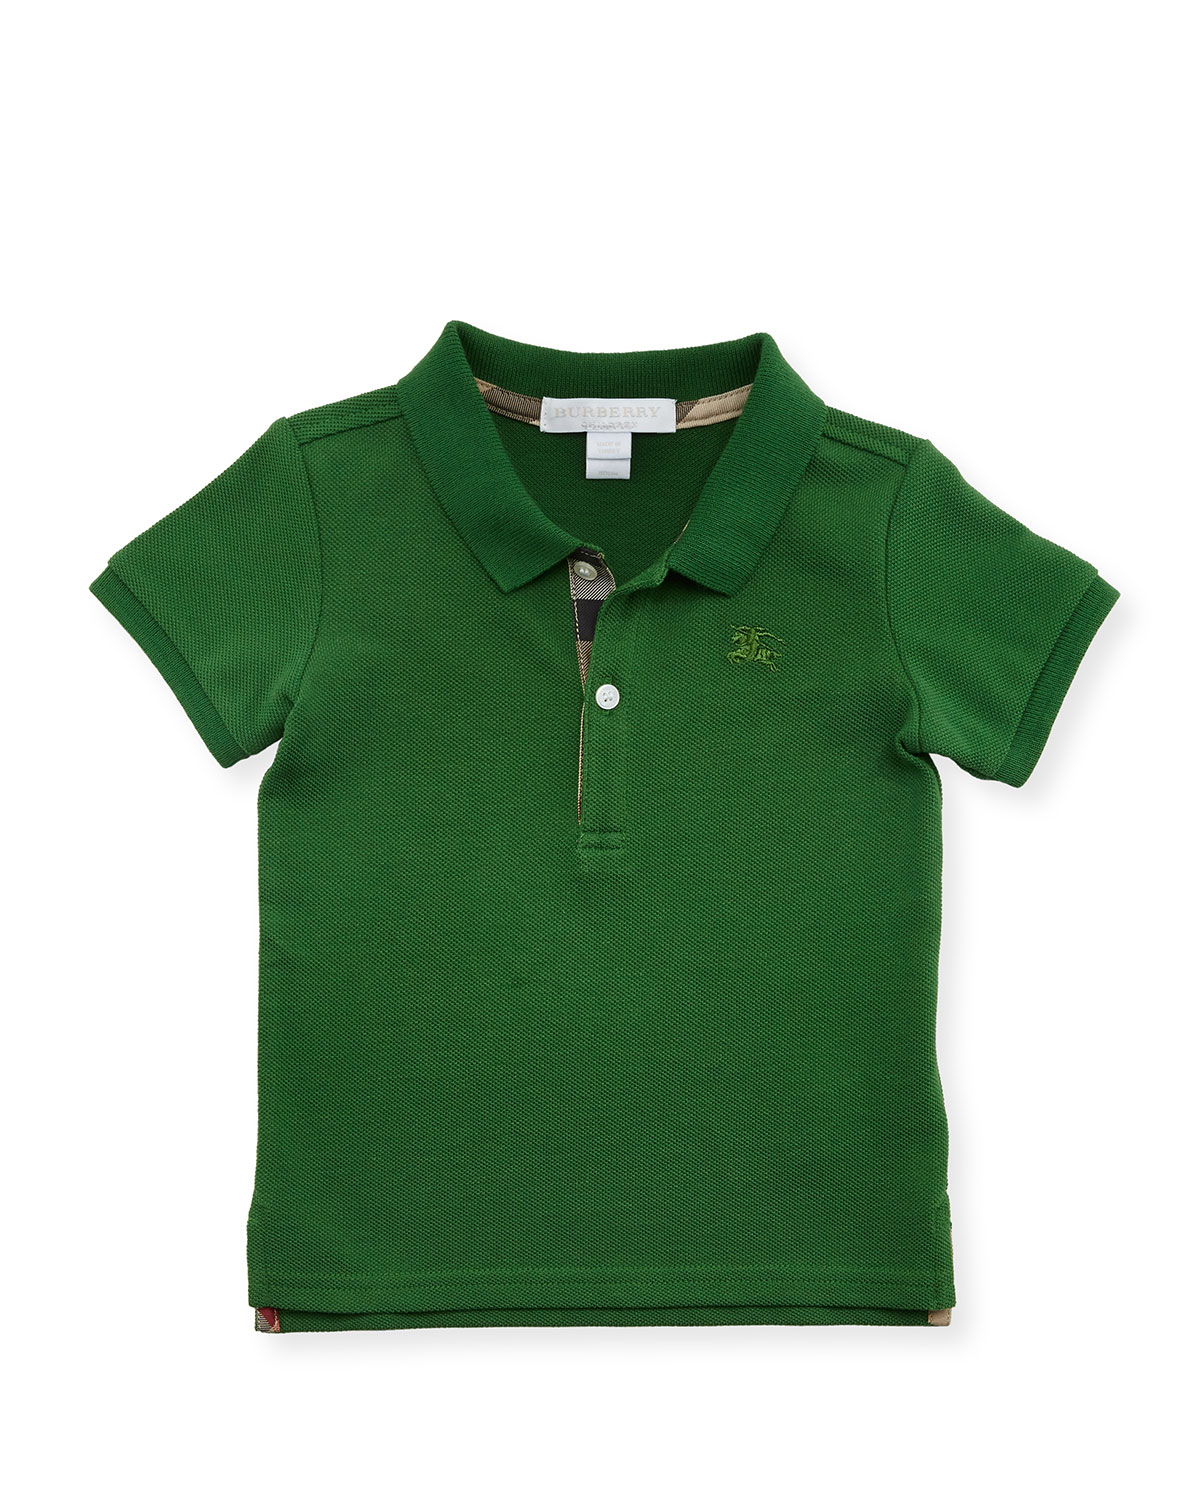 Palmer Short-Sleeve Pique Cotton Polo Shirt, Bright Fern Green, Size 6M-3